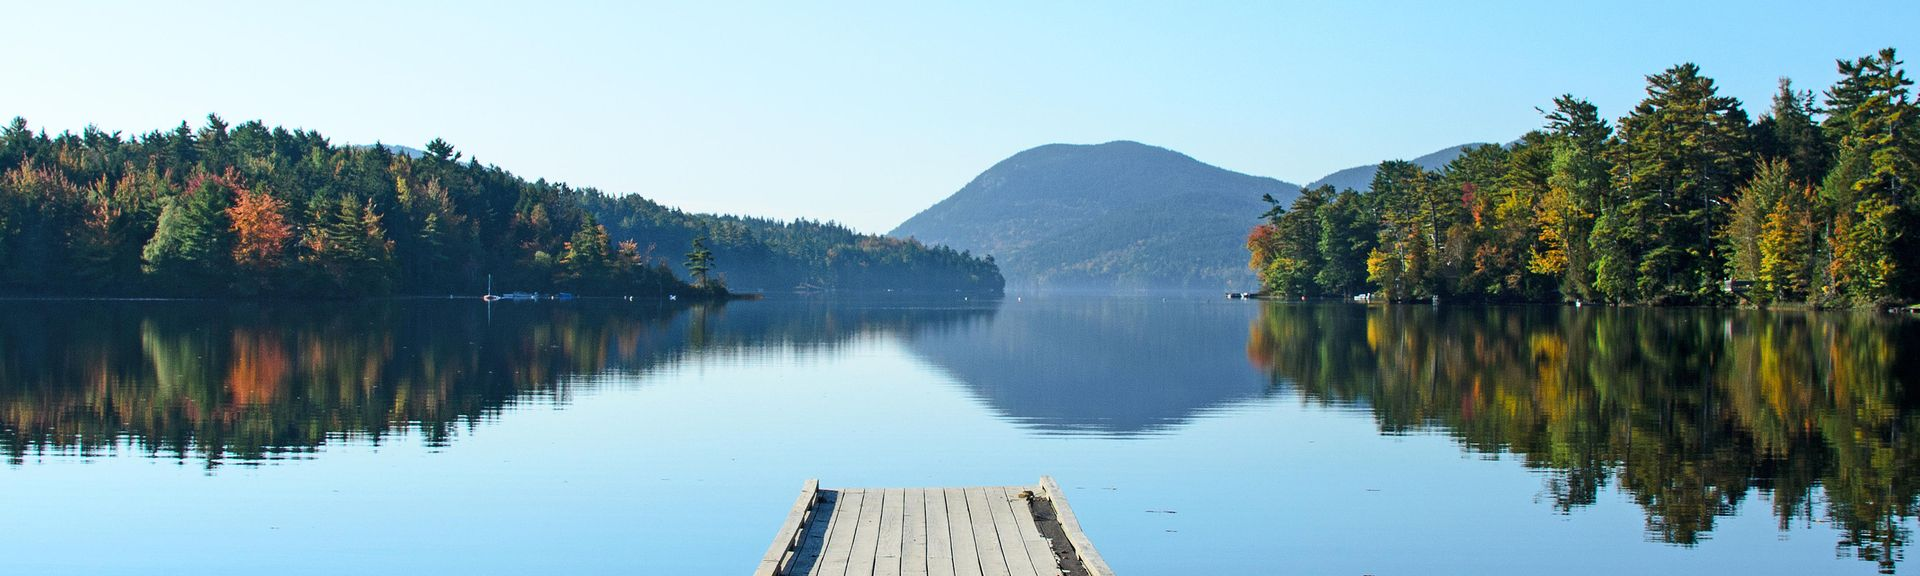 Long Pond, Mount Desert, Maine, États-Unis d'Amérique